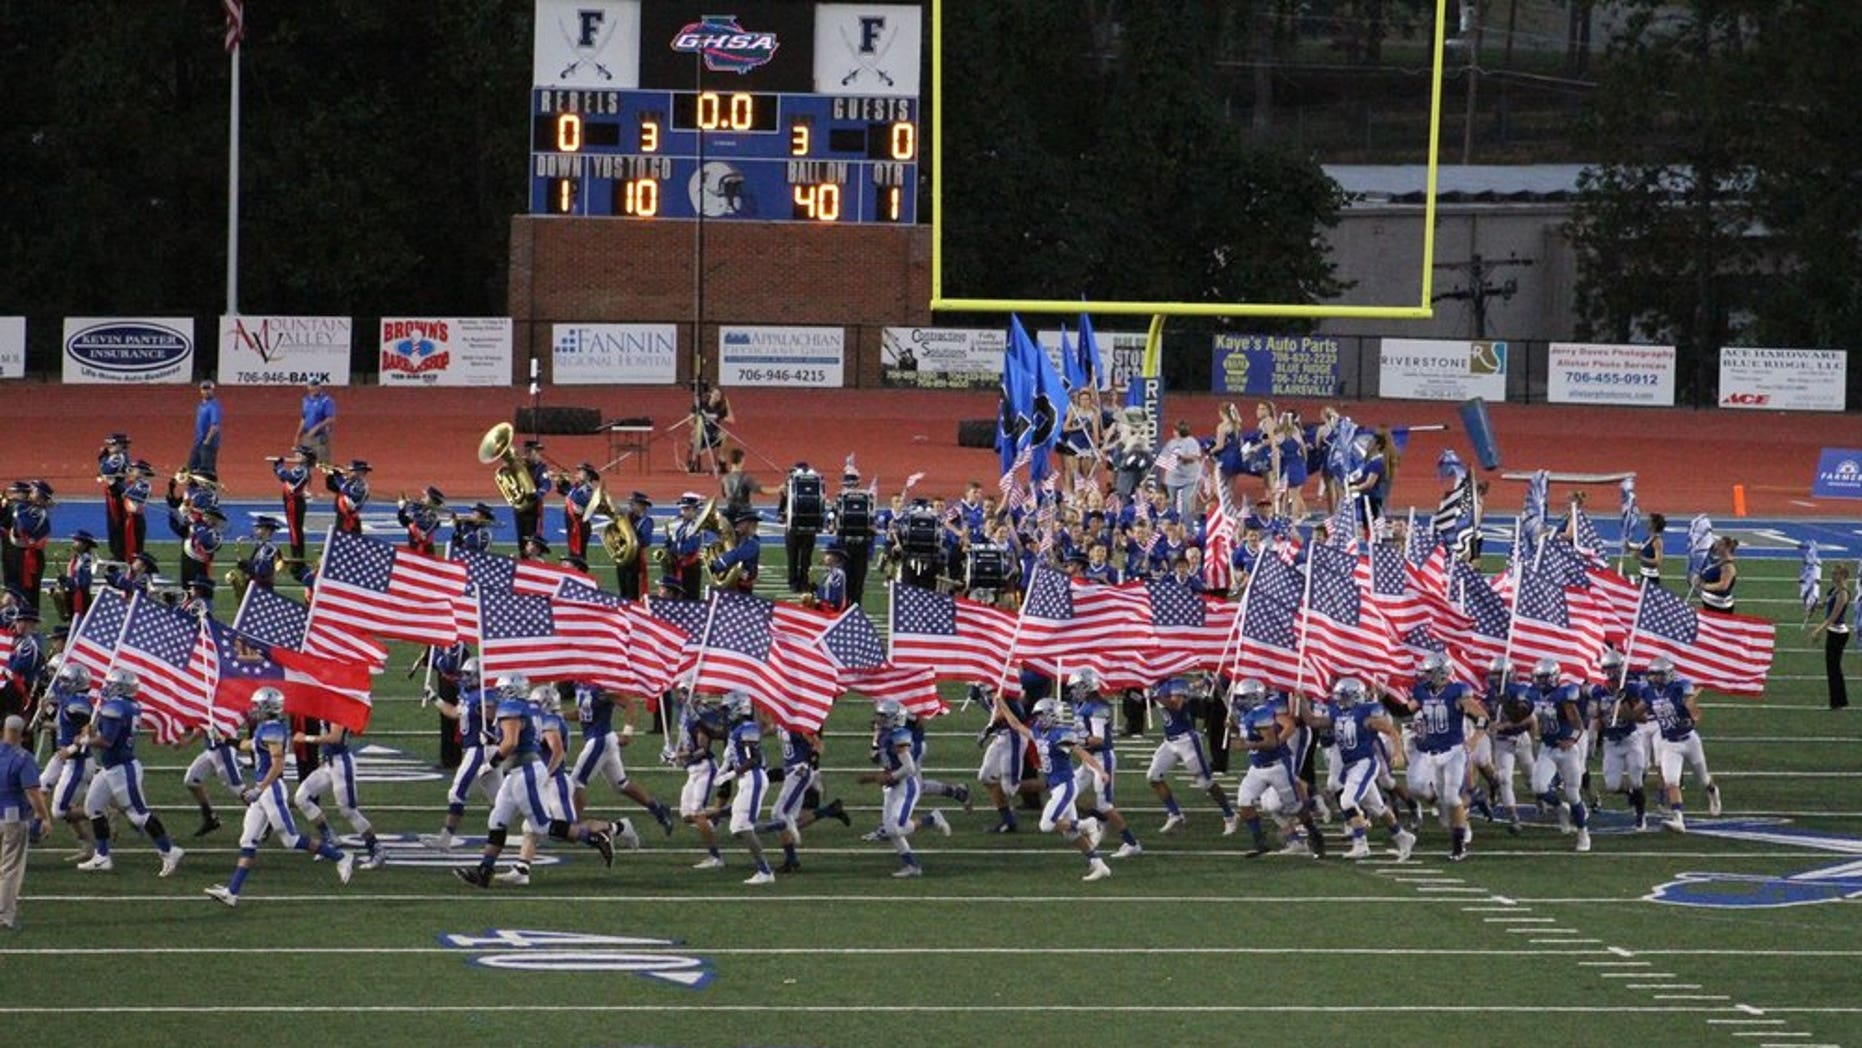 A Georgia high school football team ran onto the field Friday night waving American flags.